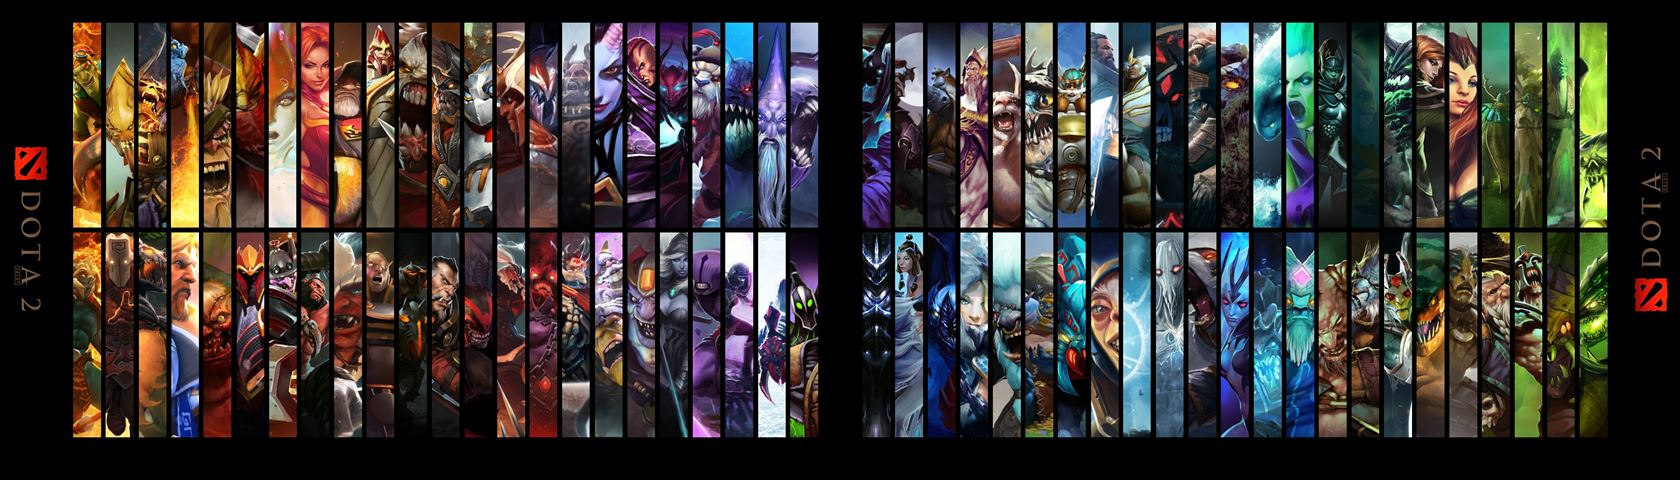 dota2 hero wallpaper v2 • images • wallpaperfusionbinary